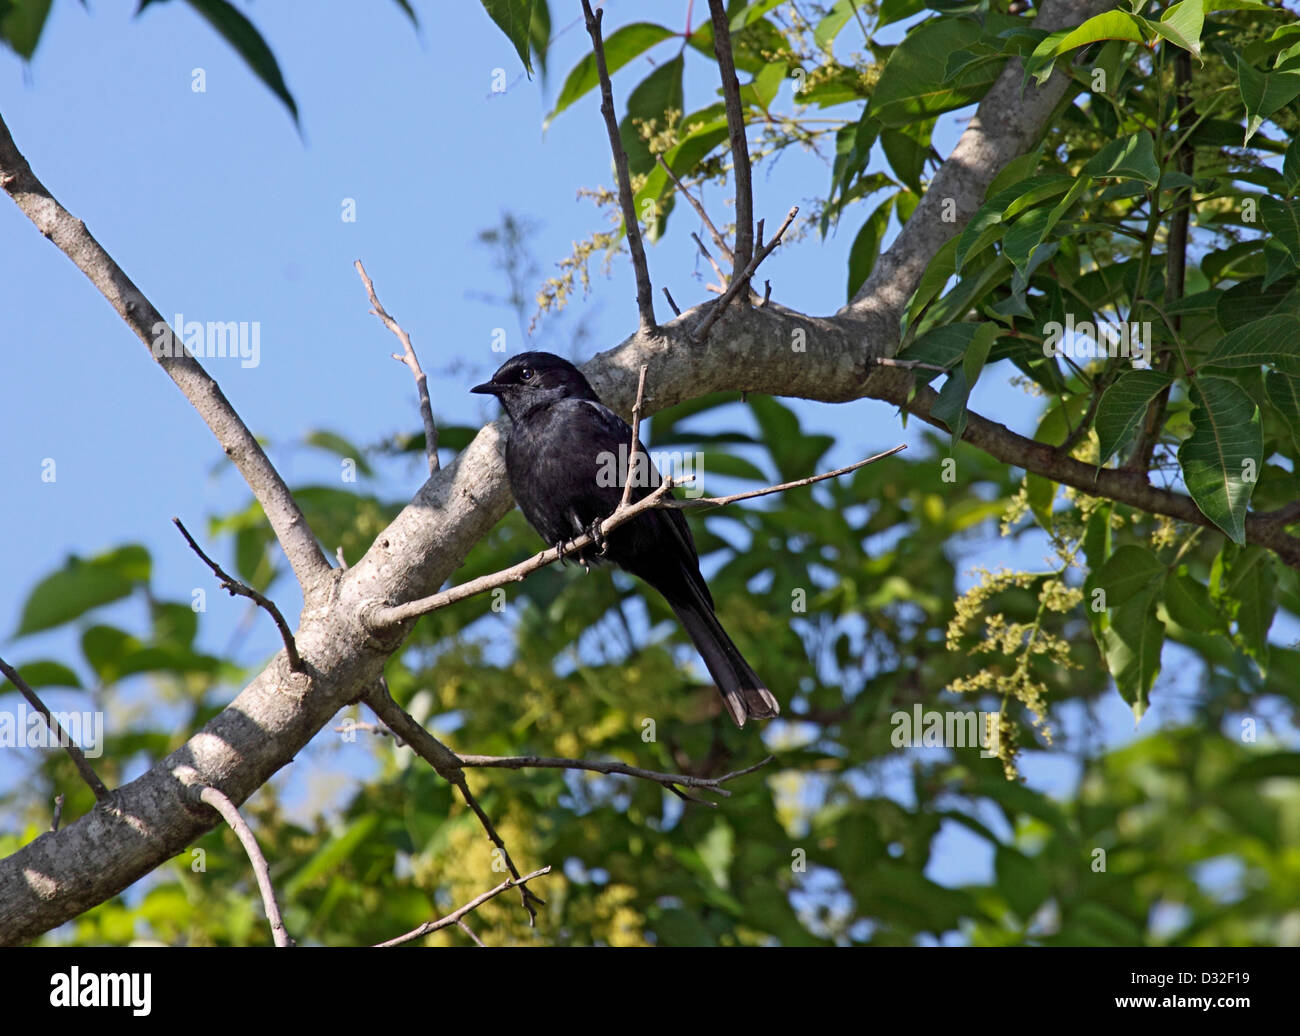 Southern black flycatcher in South Africa - Stock Image